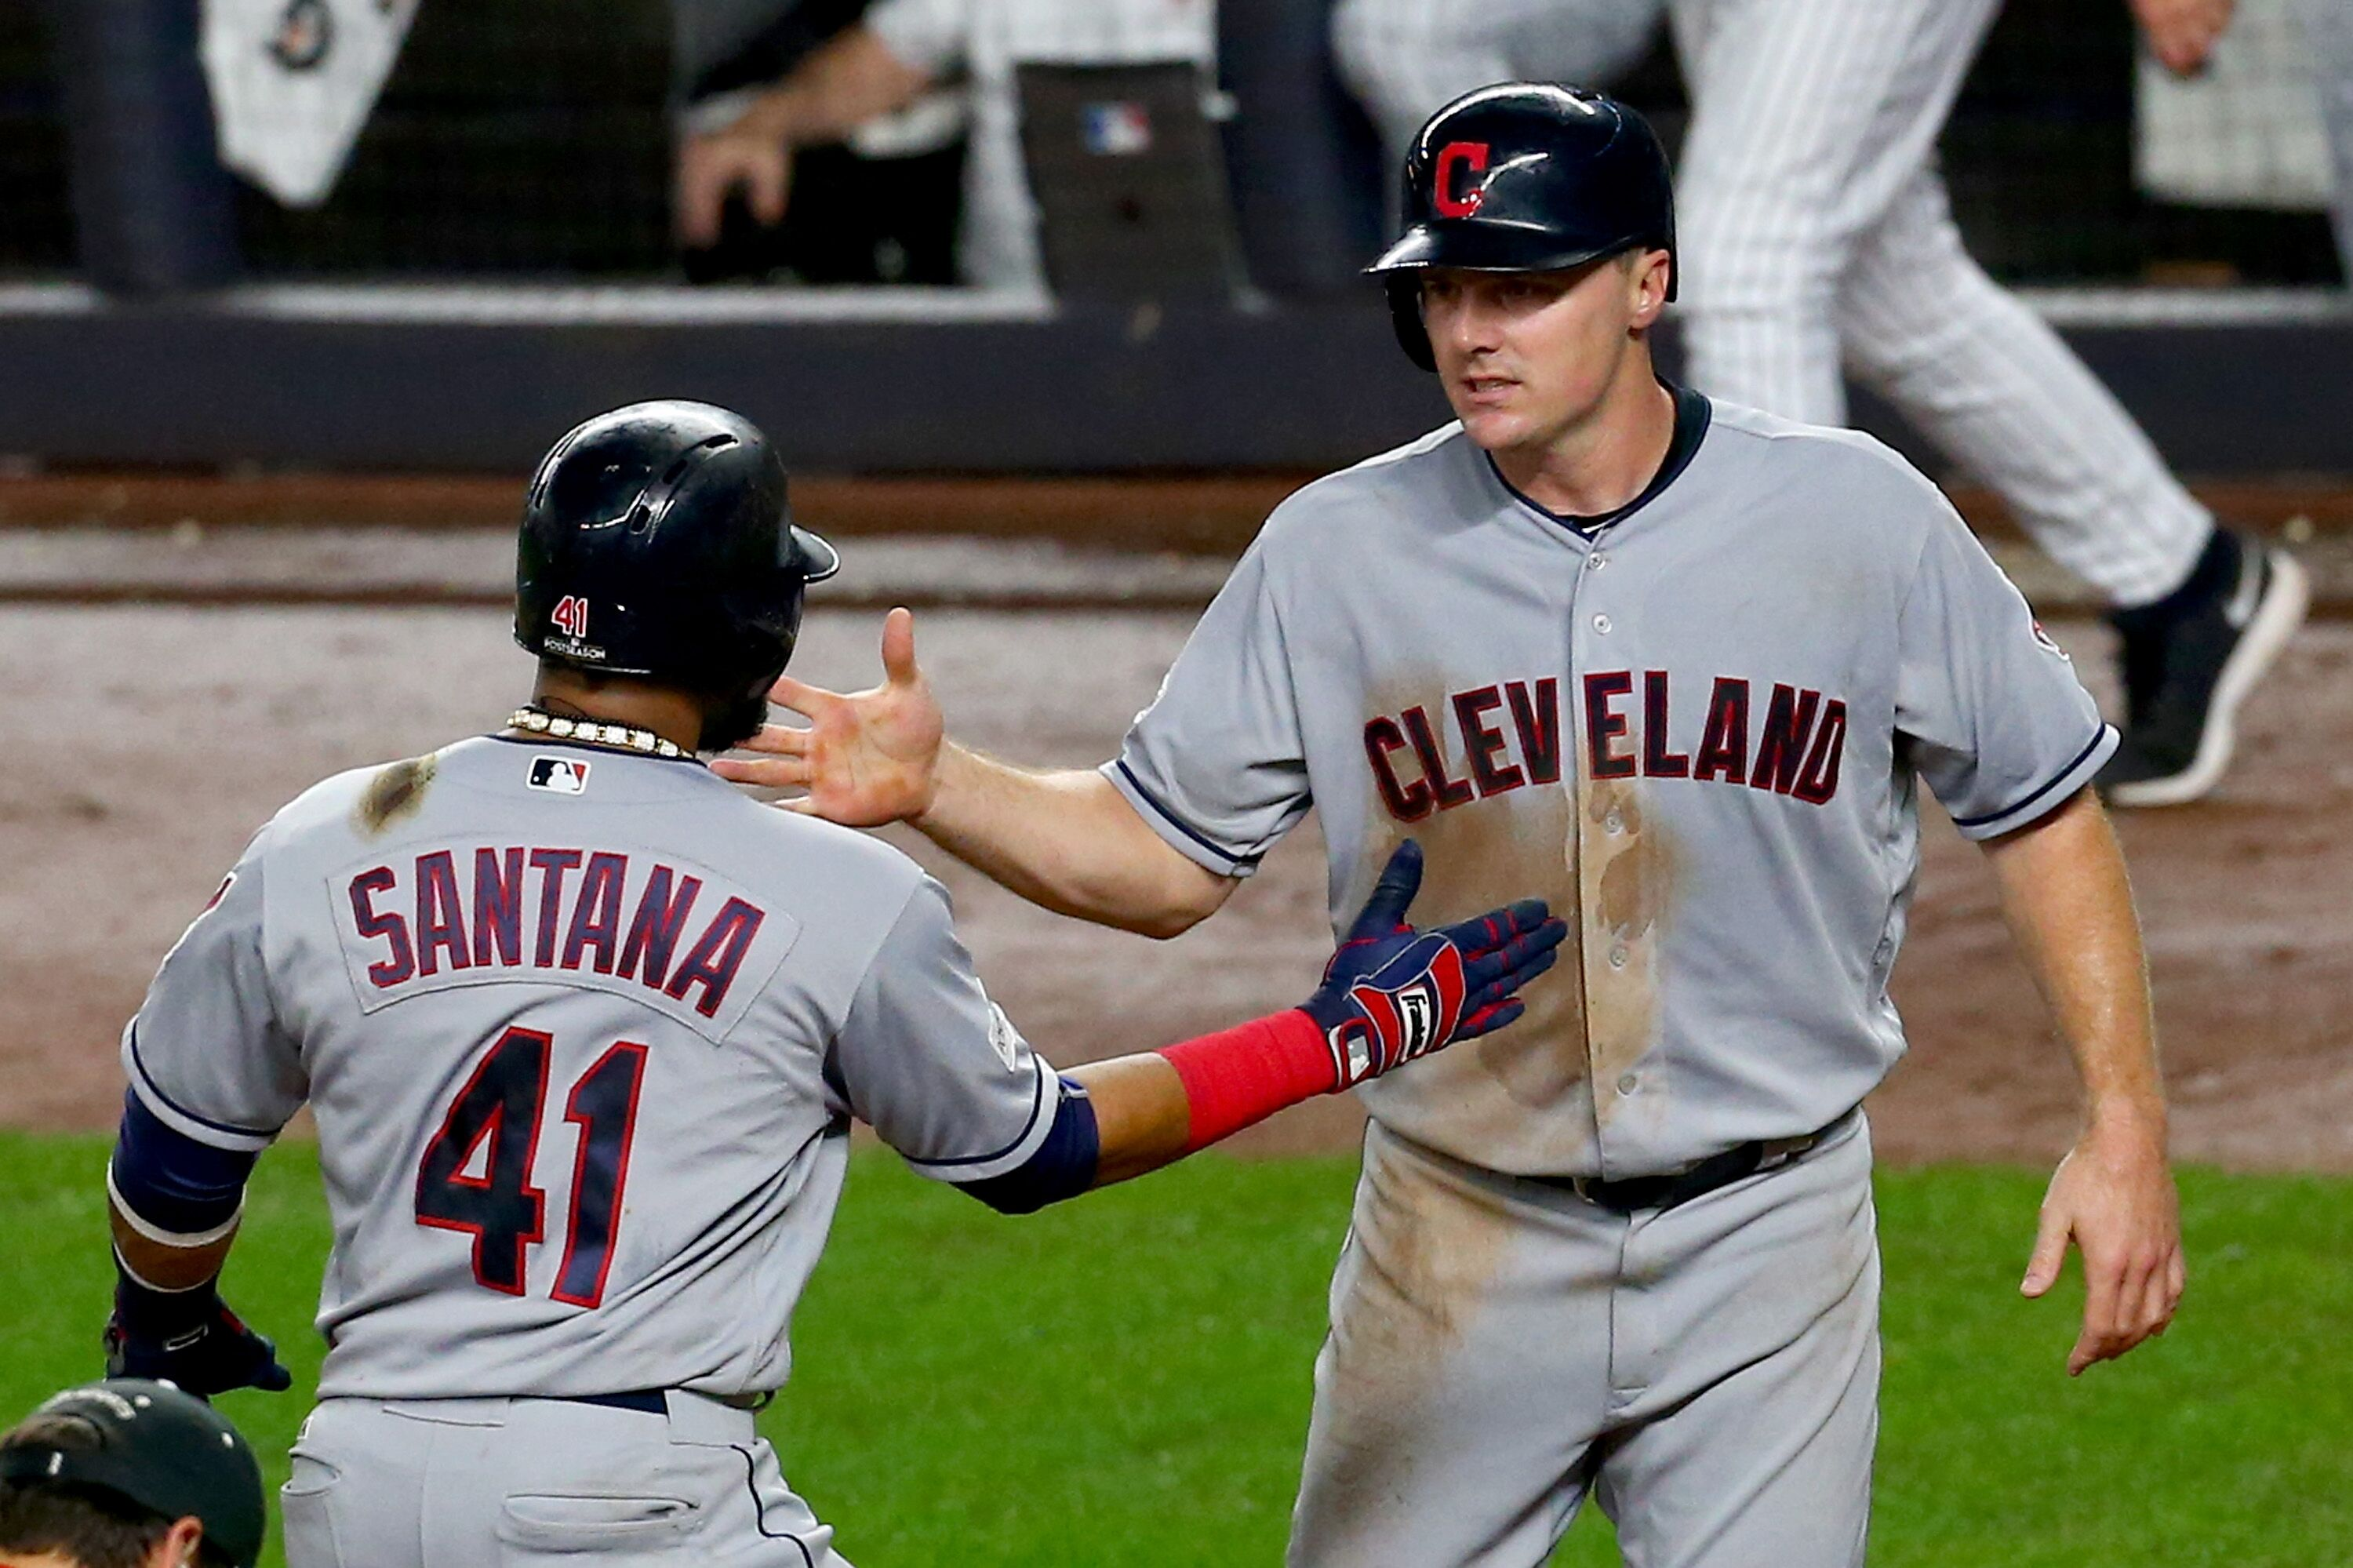 859538656-divisional-round-cleveland-indians-v-new-york-yankees-game-four.jpg